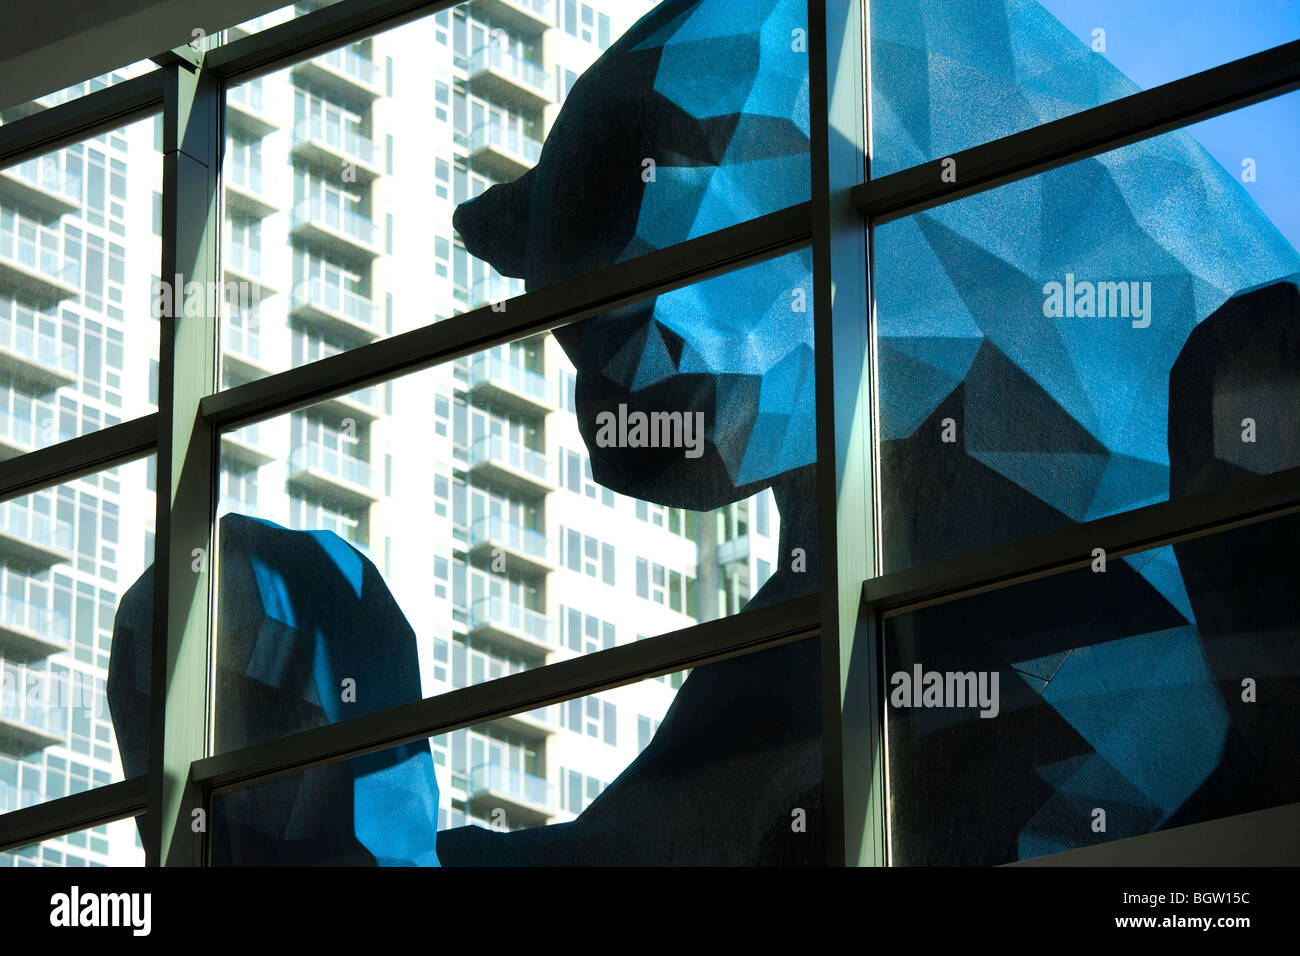 http://c7.alamy.com/comp/BGW15C/denver-colorado-the-big-blue-bear-sculpture-by-lawrence-argent-at-BGW15C.jpg